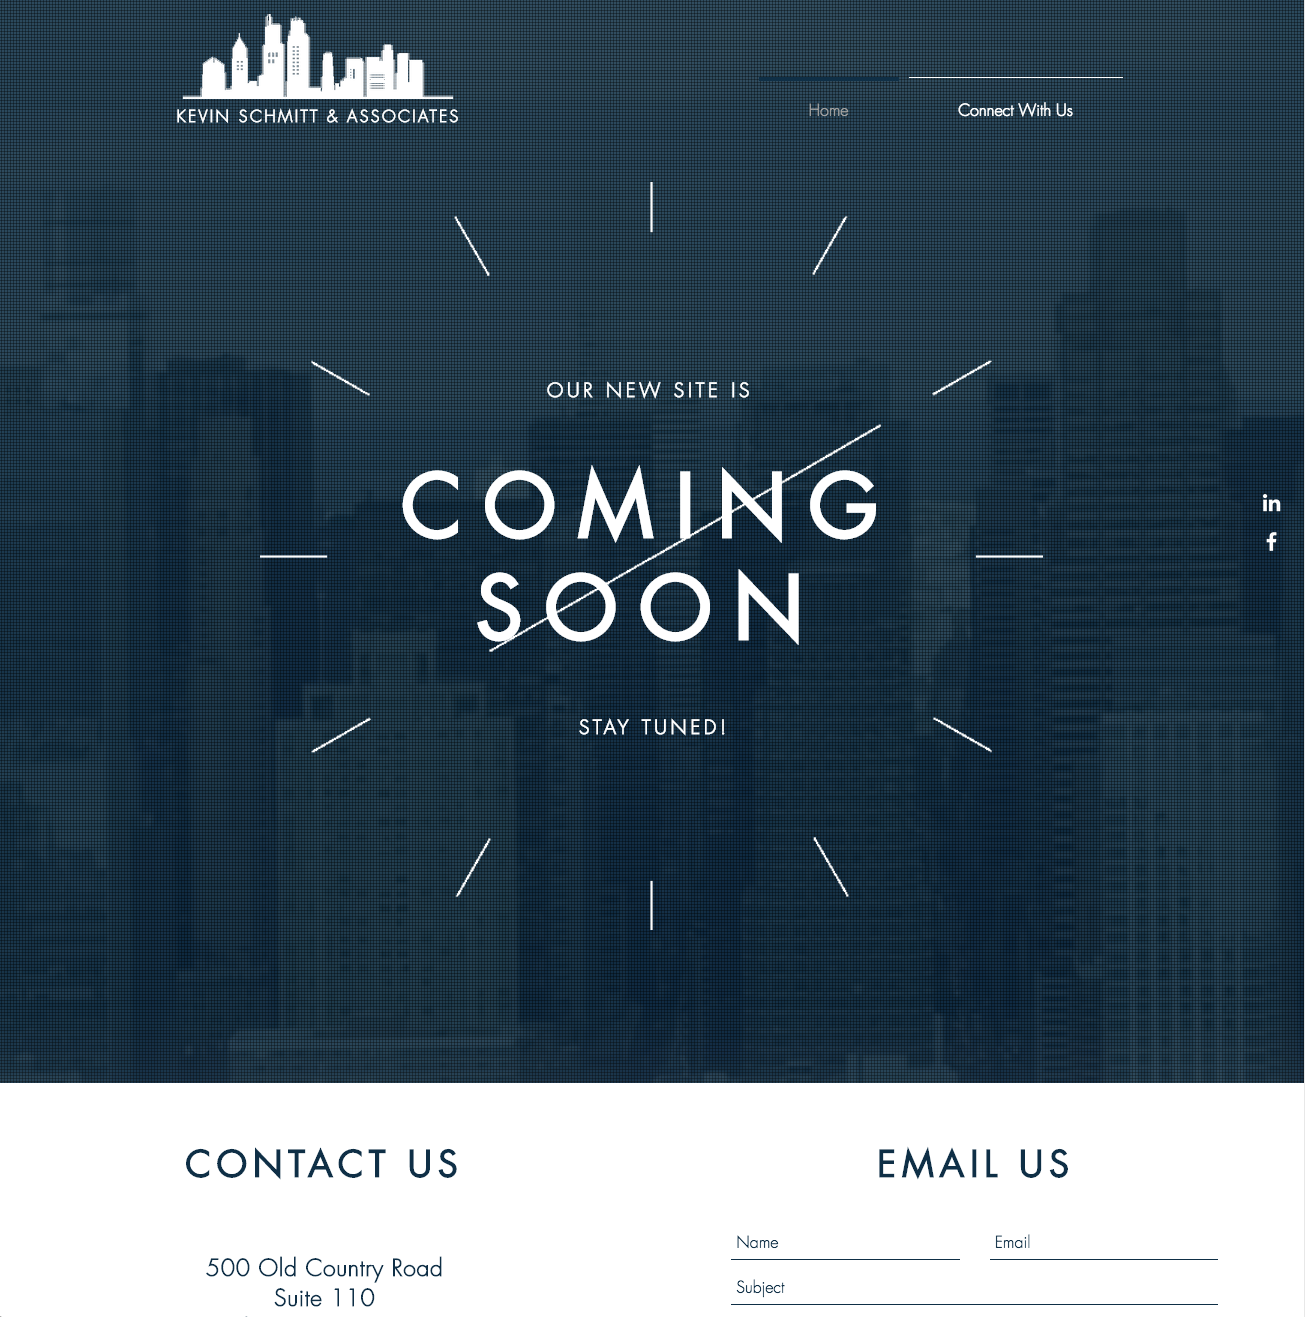 Kevin Schmitt and Associates Landing Page